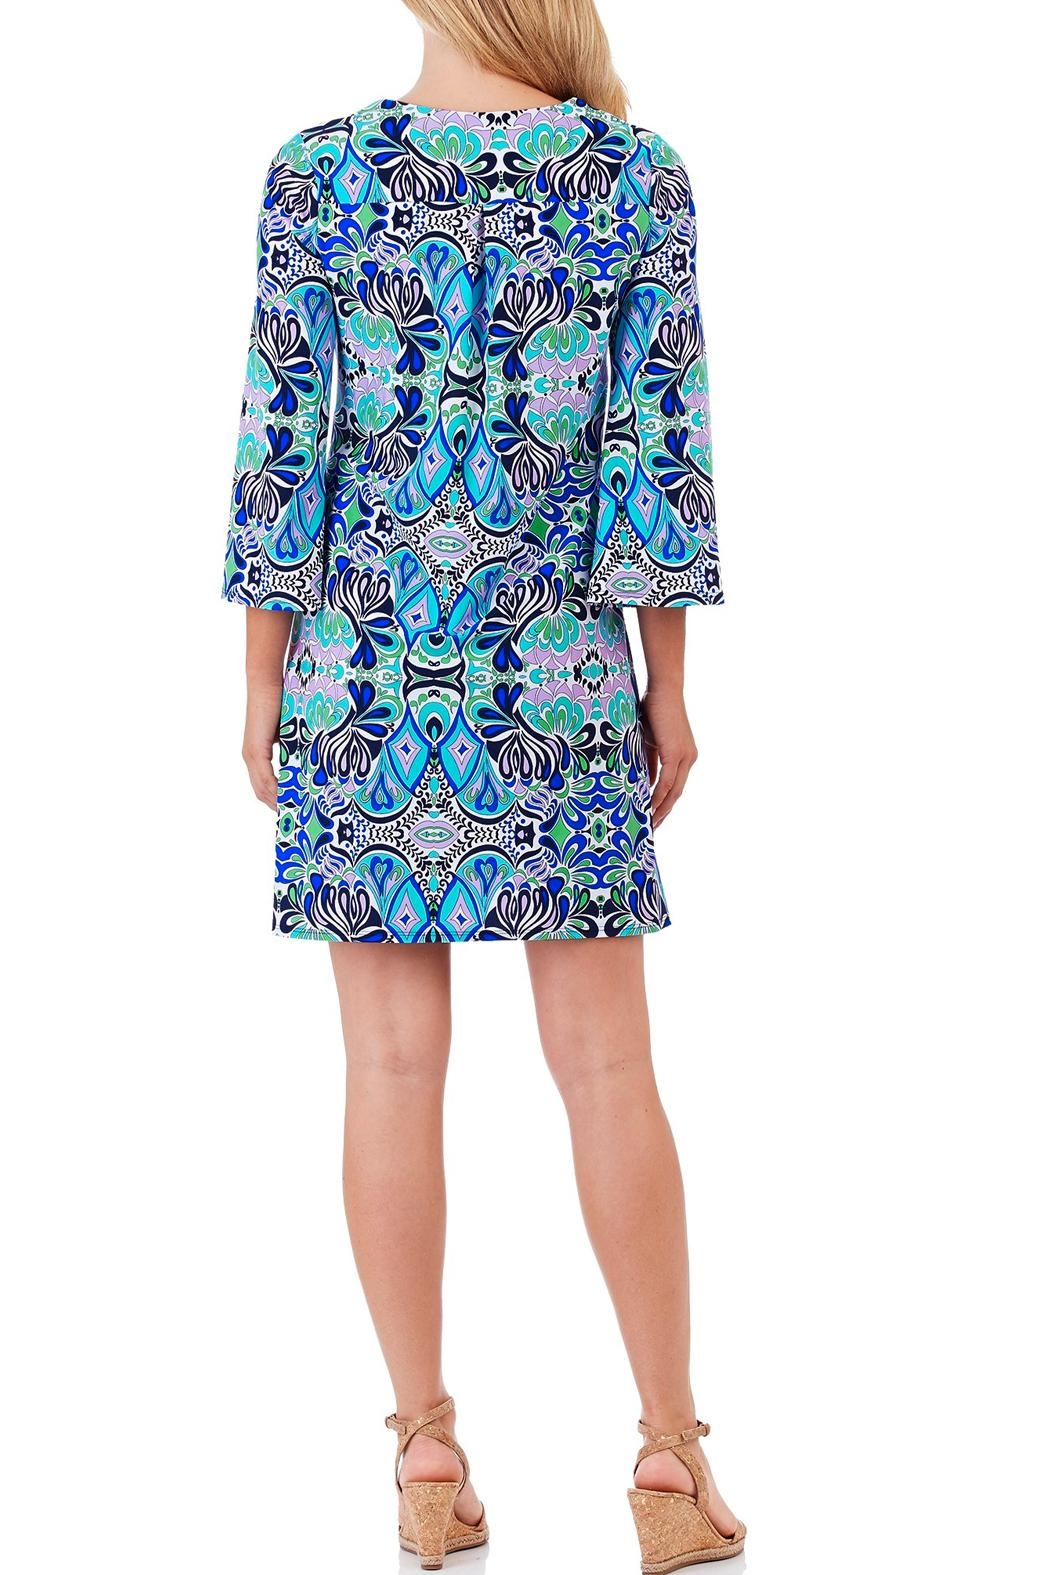 Jude Connally Lexi Shift Dress - Front Full Image